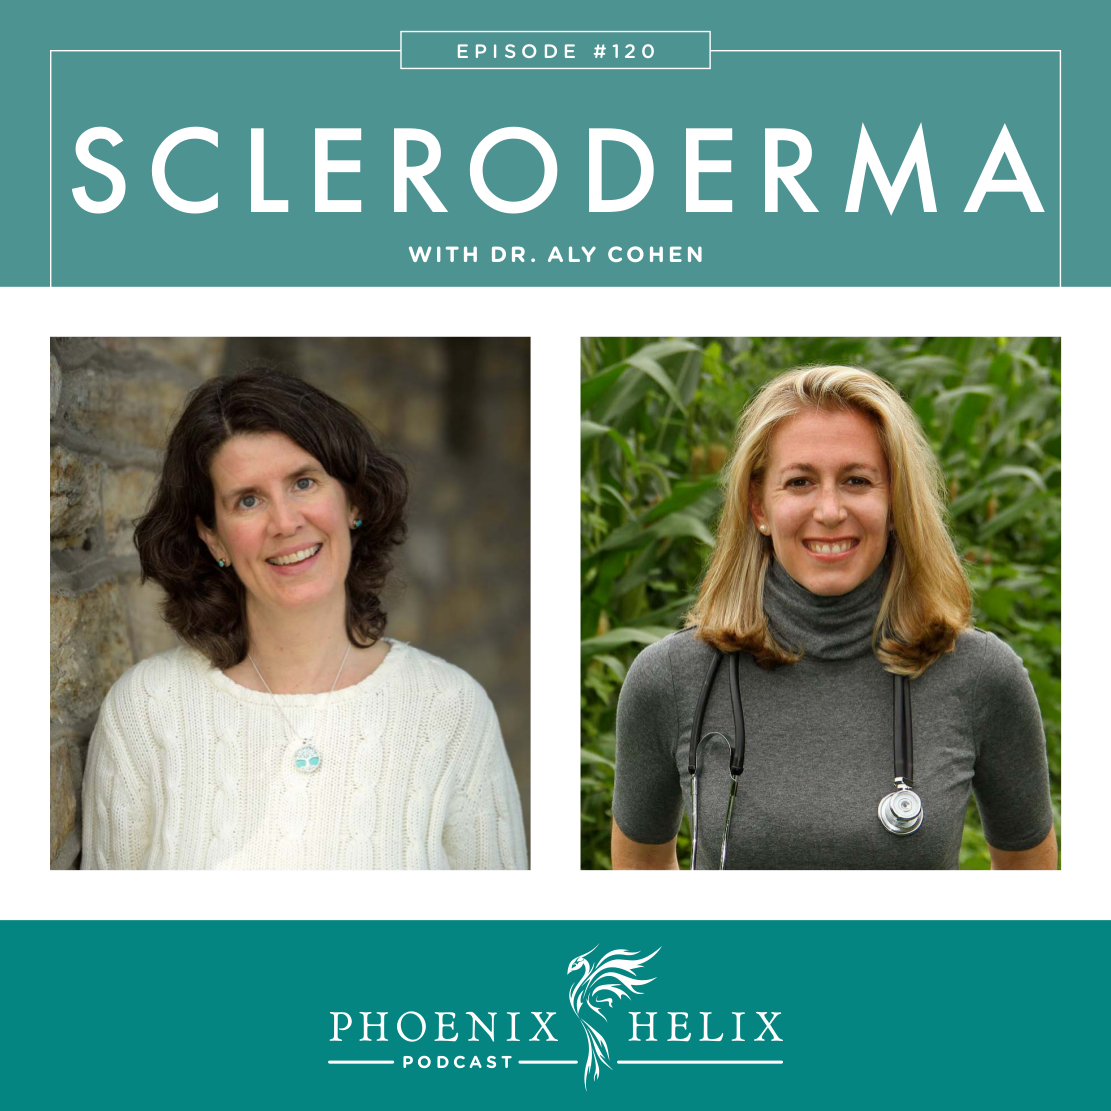 Scleroderma with Dr. Aly Cohen | Phoenix Helix Podcast